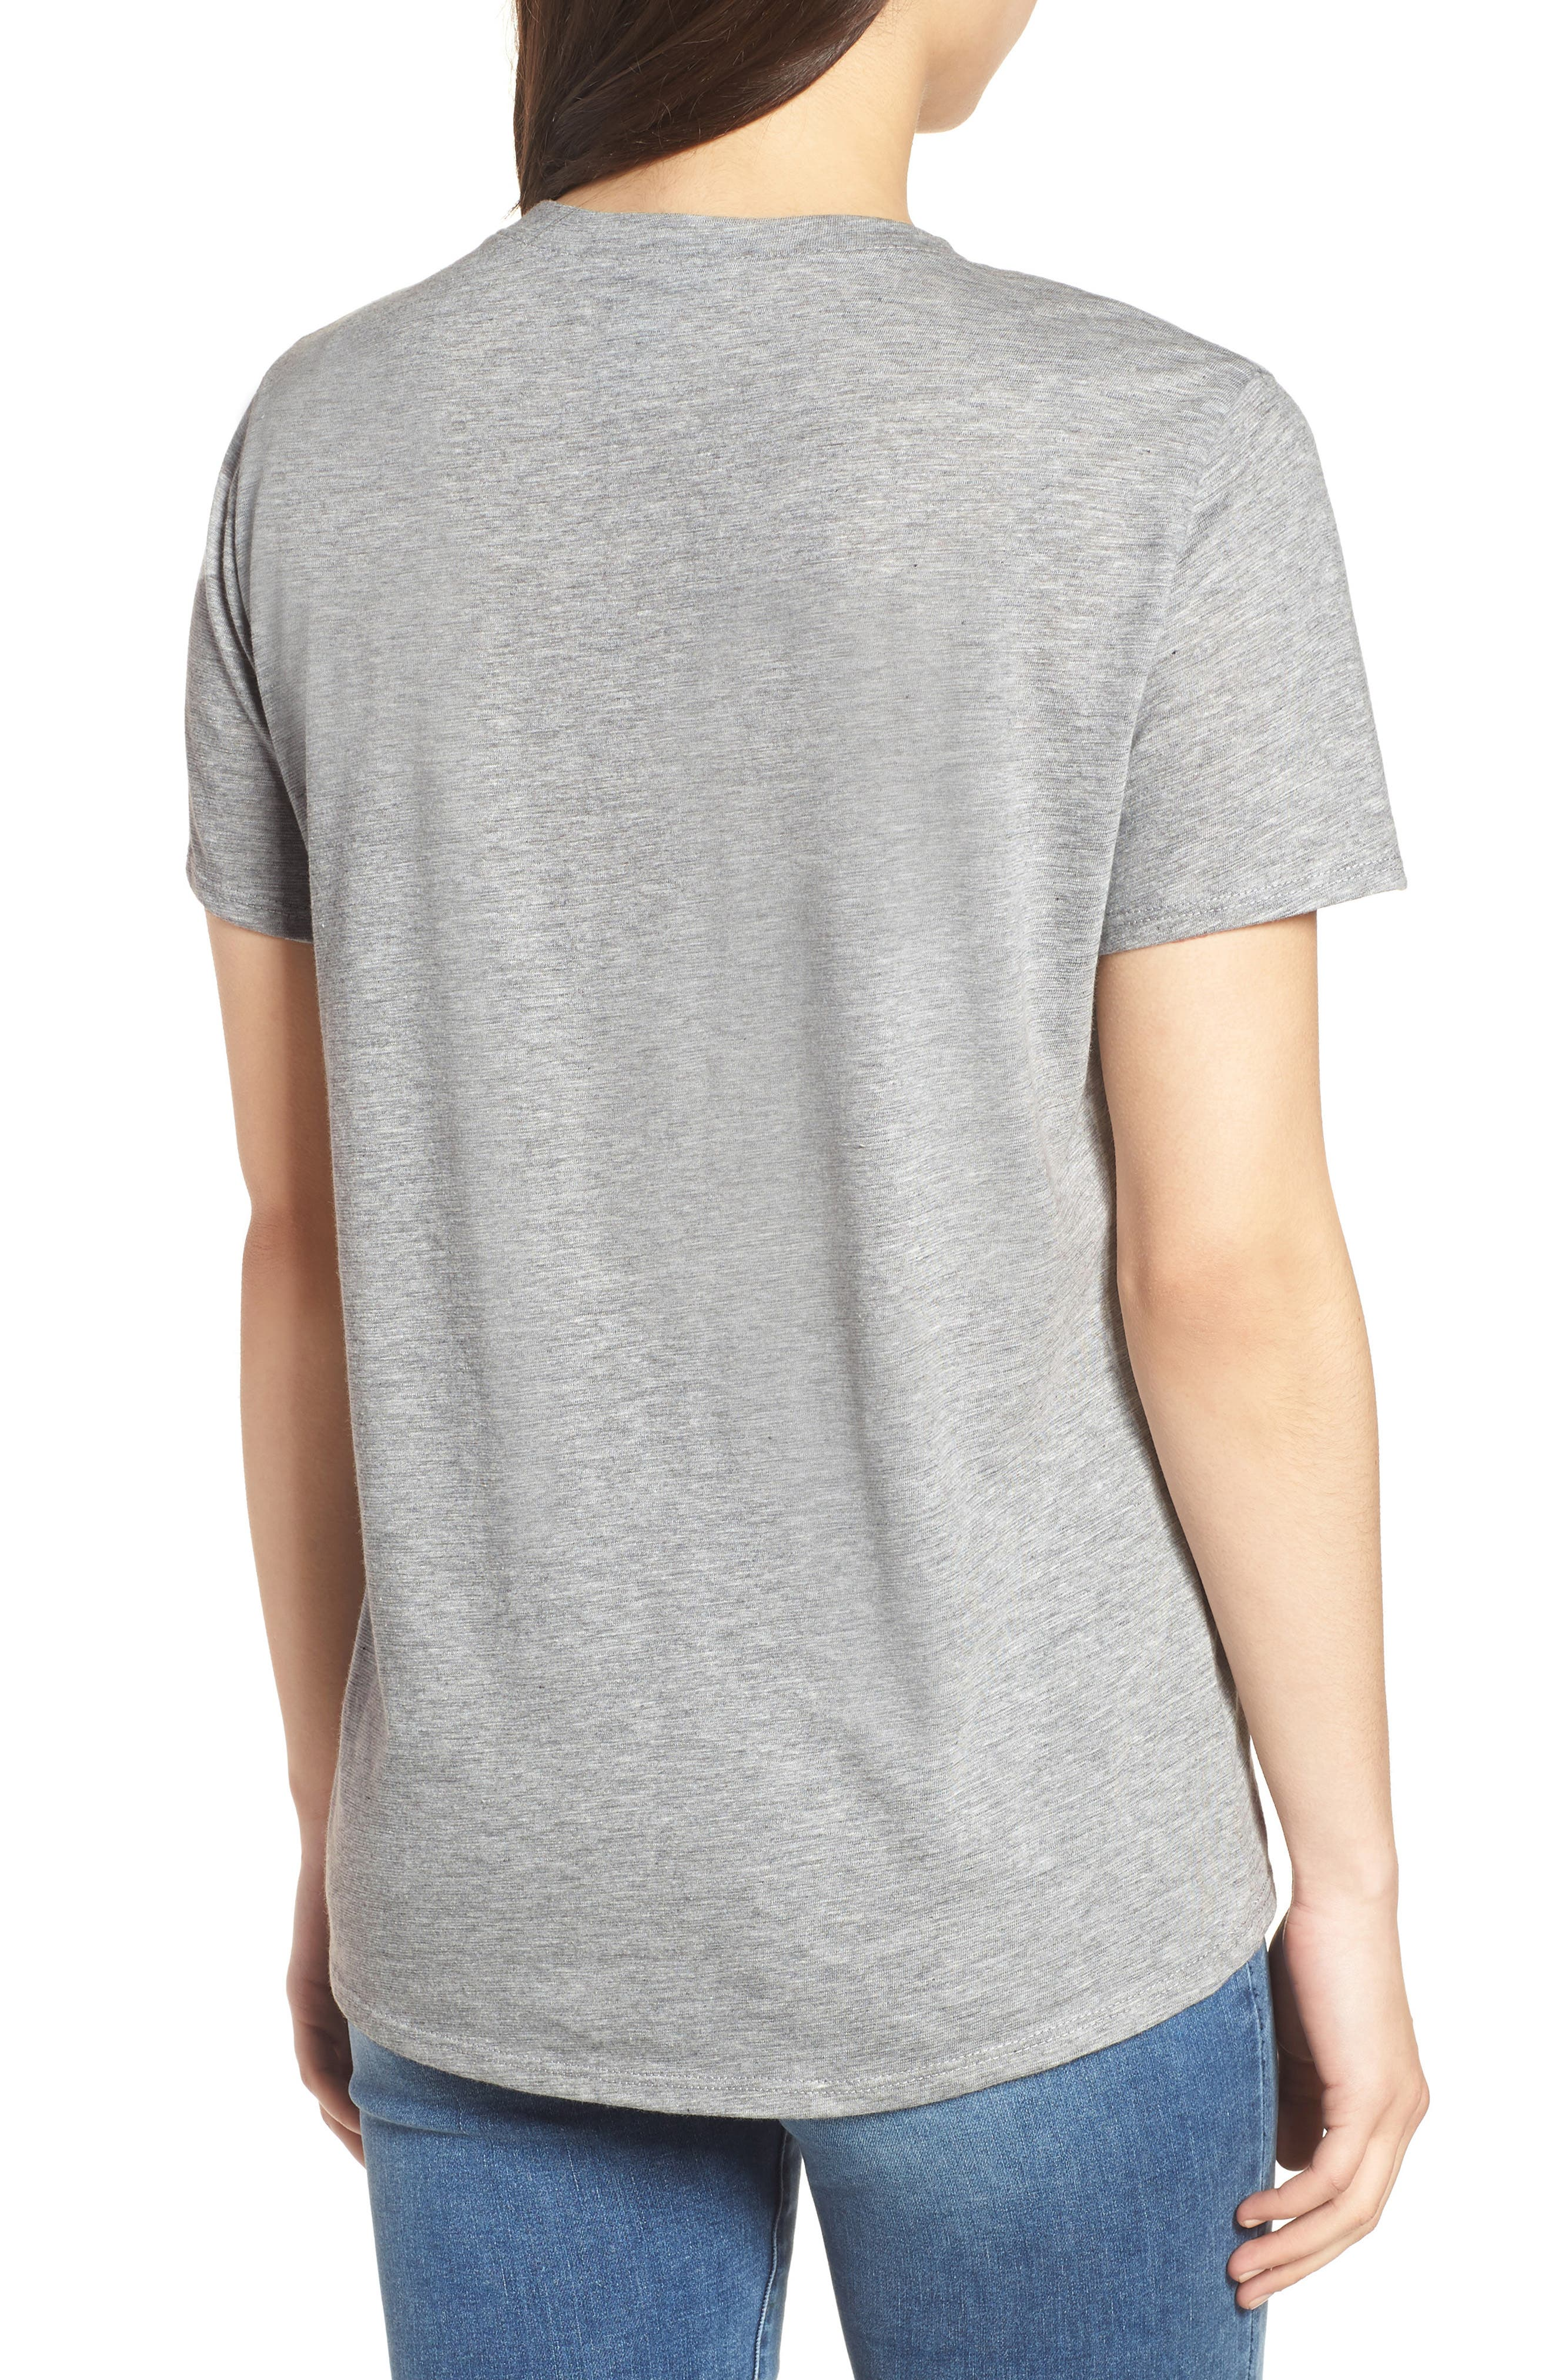 Off Duty Graphic Tee,                             Alternate thumbnail 2, color,                             Grey Heather